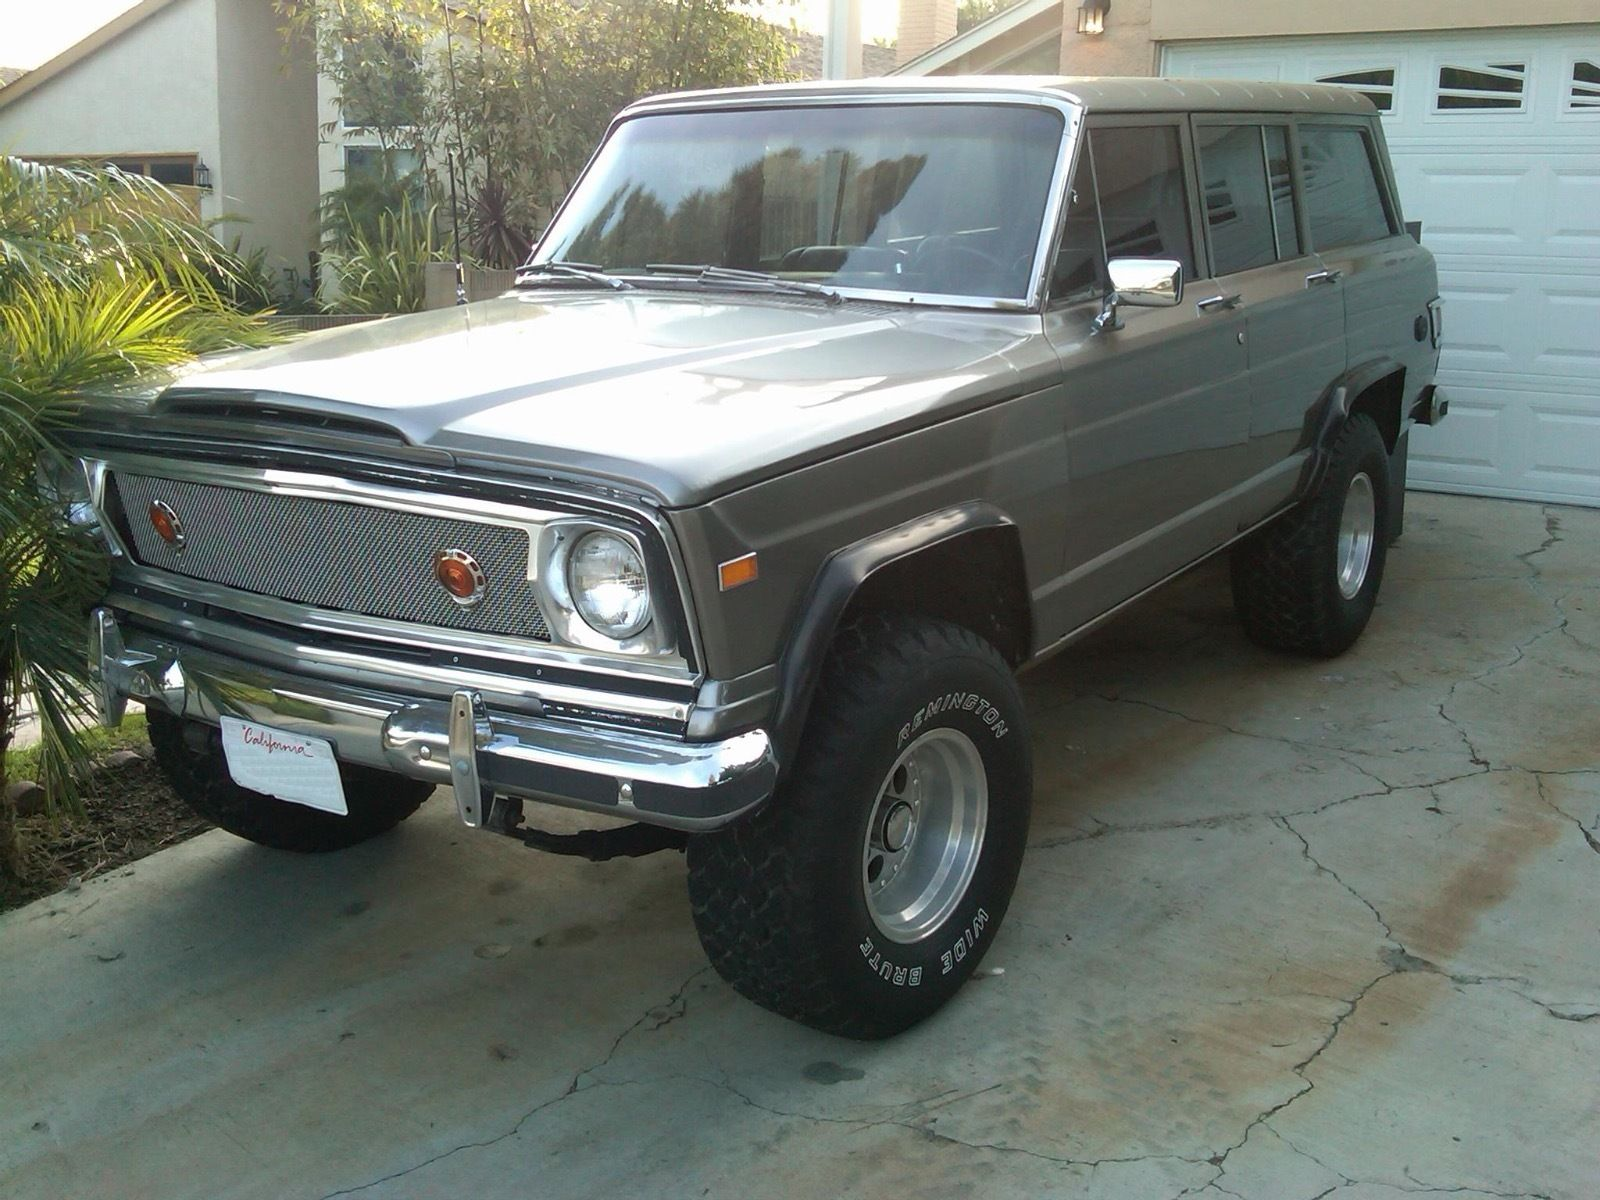 Jeep Wagoneer For Sale on 1997 Jeep Cherokee Sport